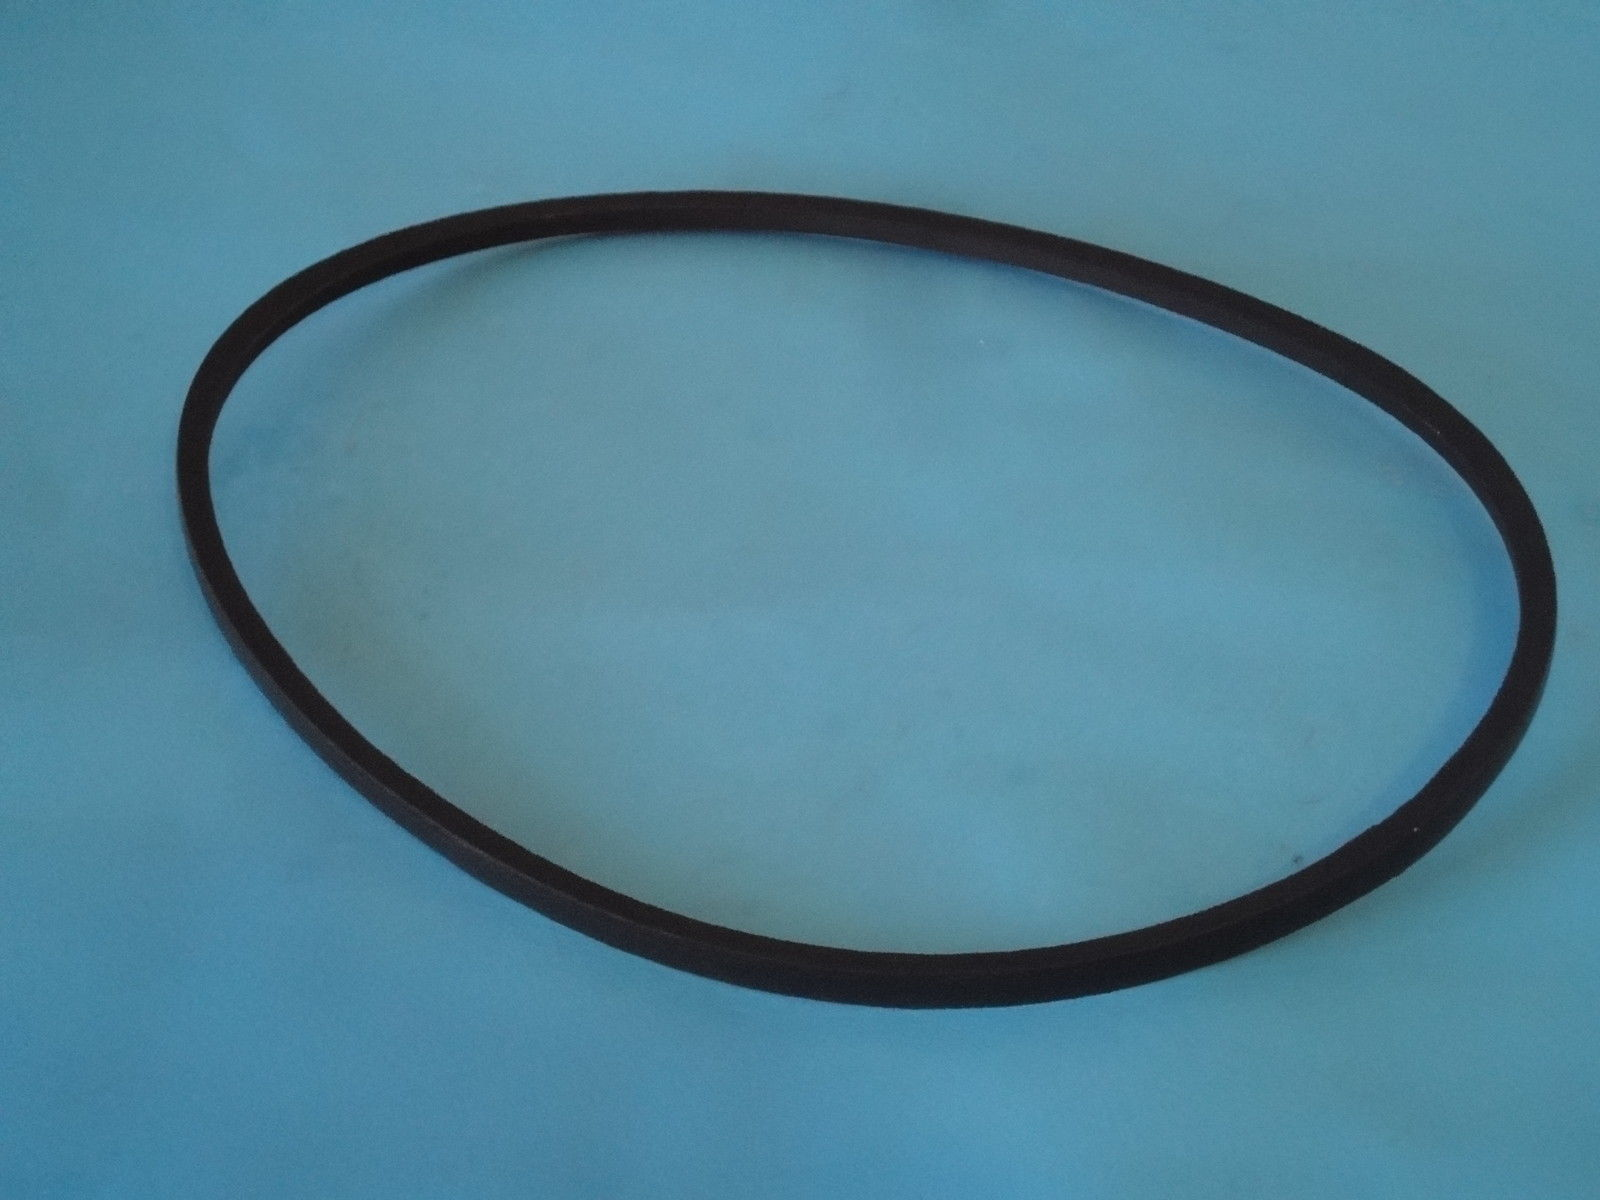 McCulloch M46-500CD lawn mower drive Belt part 5013819-01-5 (275